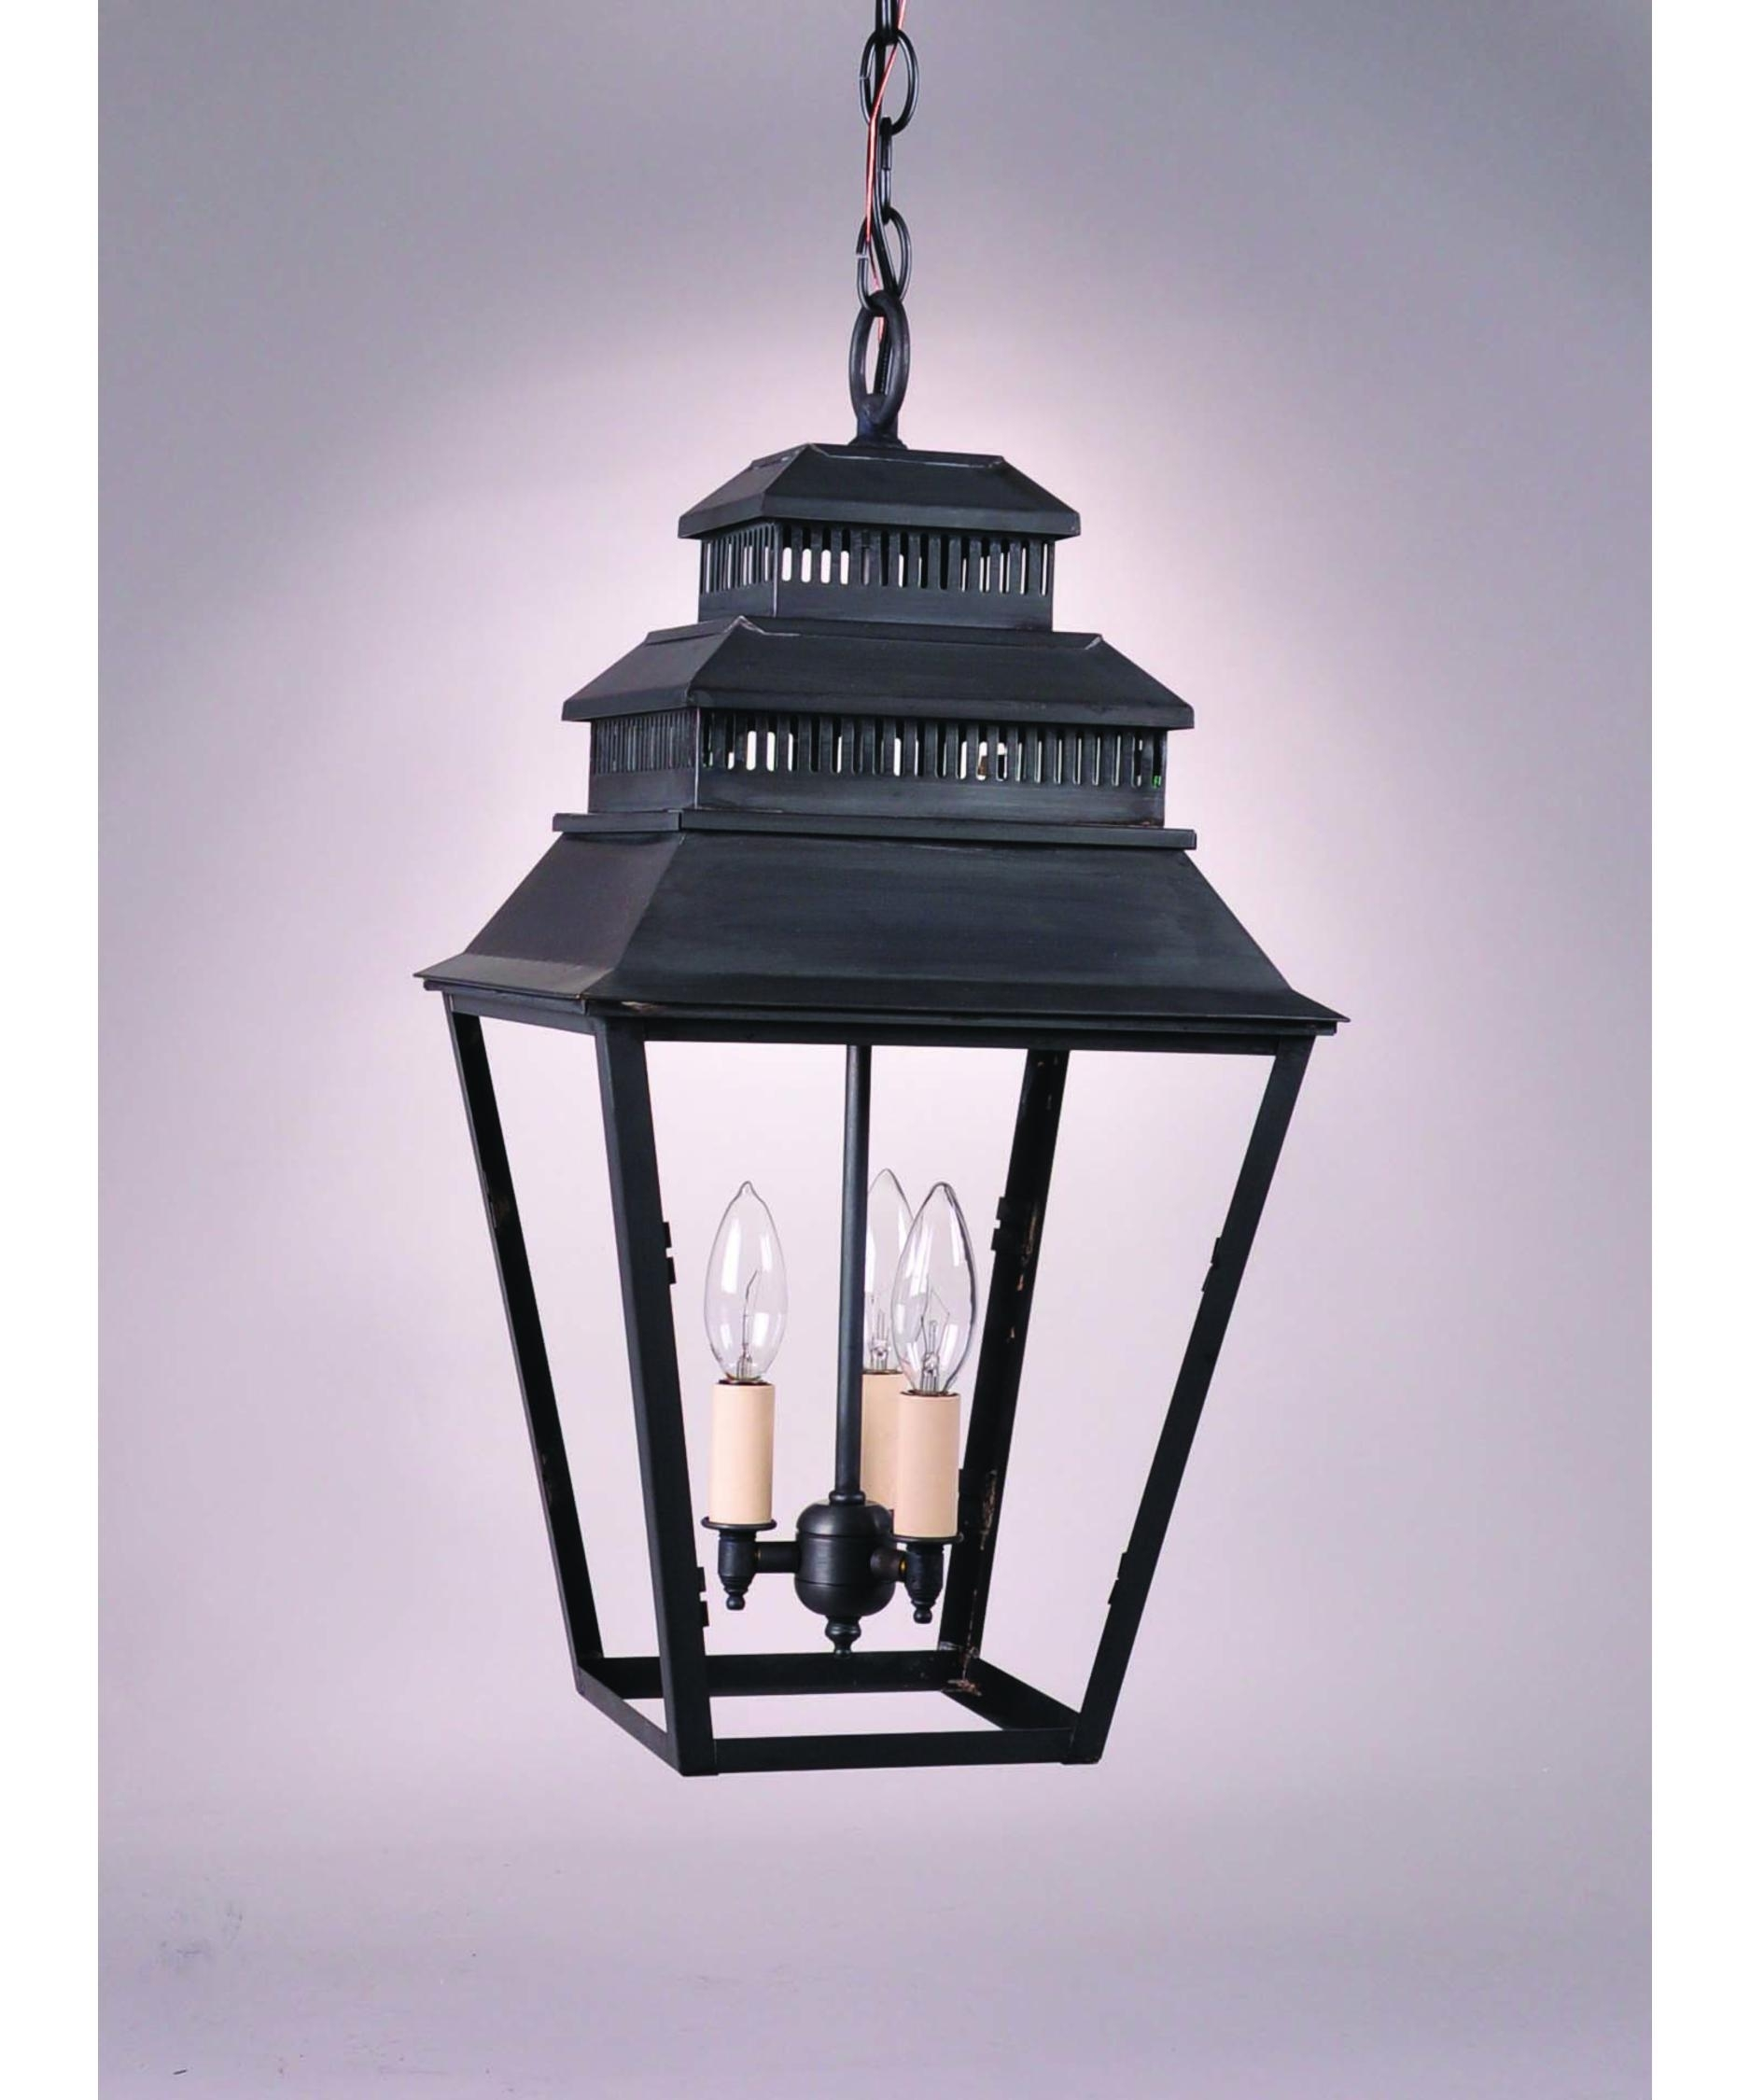 Furniture : Outdoor Lantern Light Outdoor Lantern Light With Pir In Outdoor Hanging Lanterns With Pir (#4 of 15)